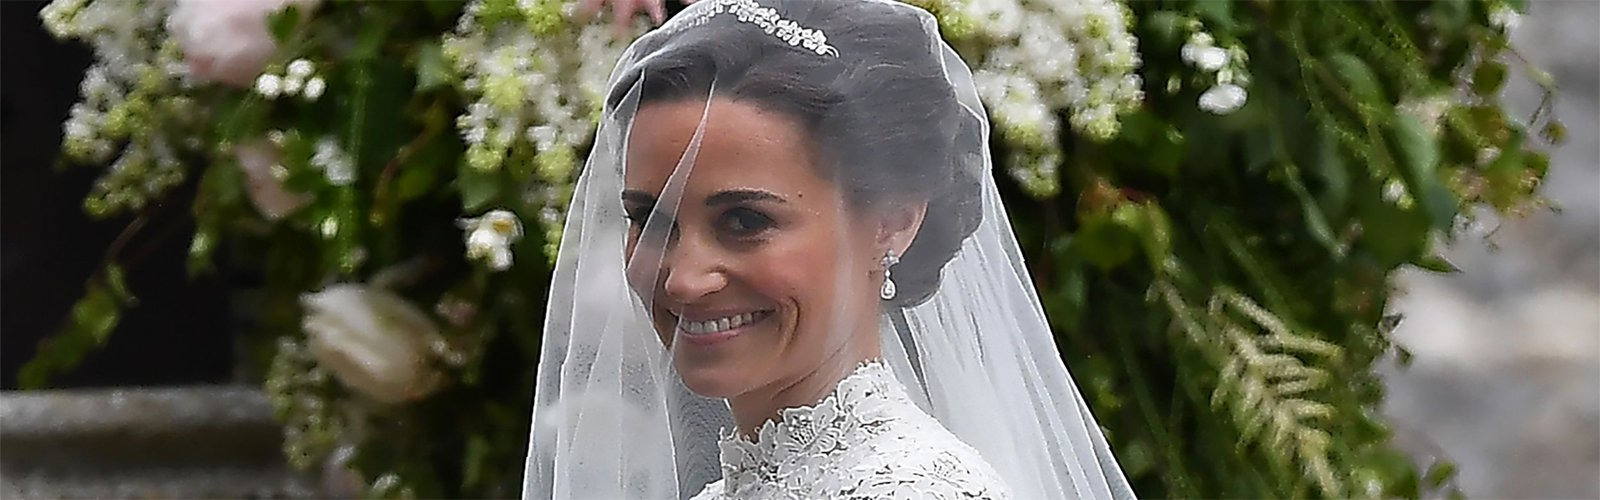 Royal sister-in-law Pippa takes spotlight in star-studded British wedding